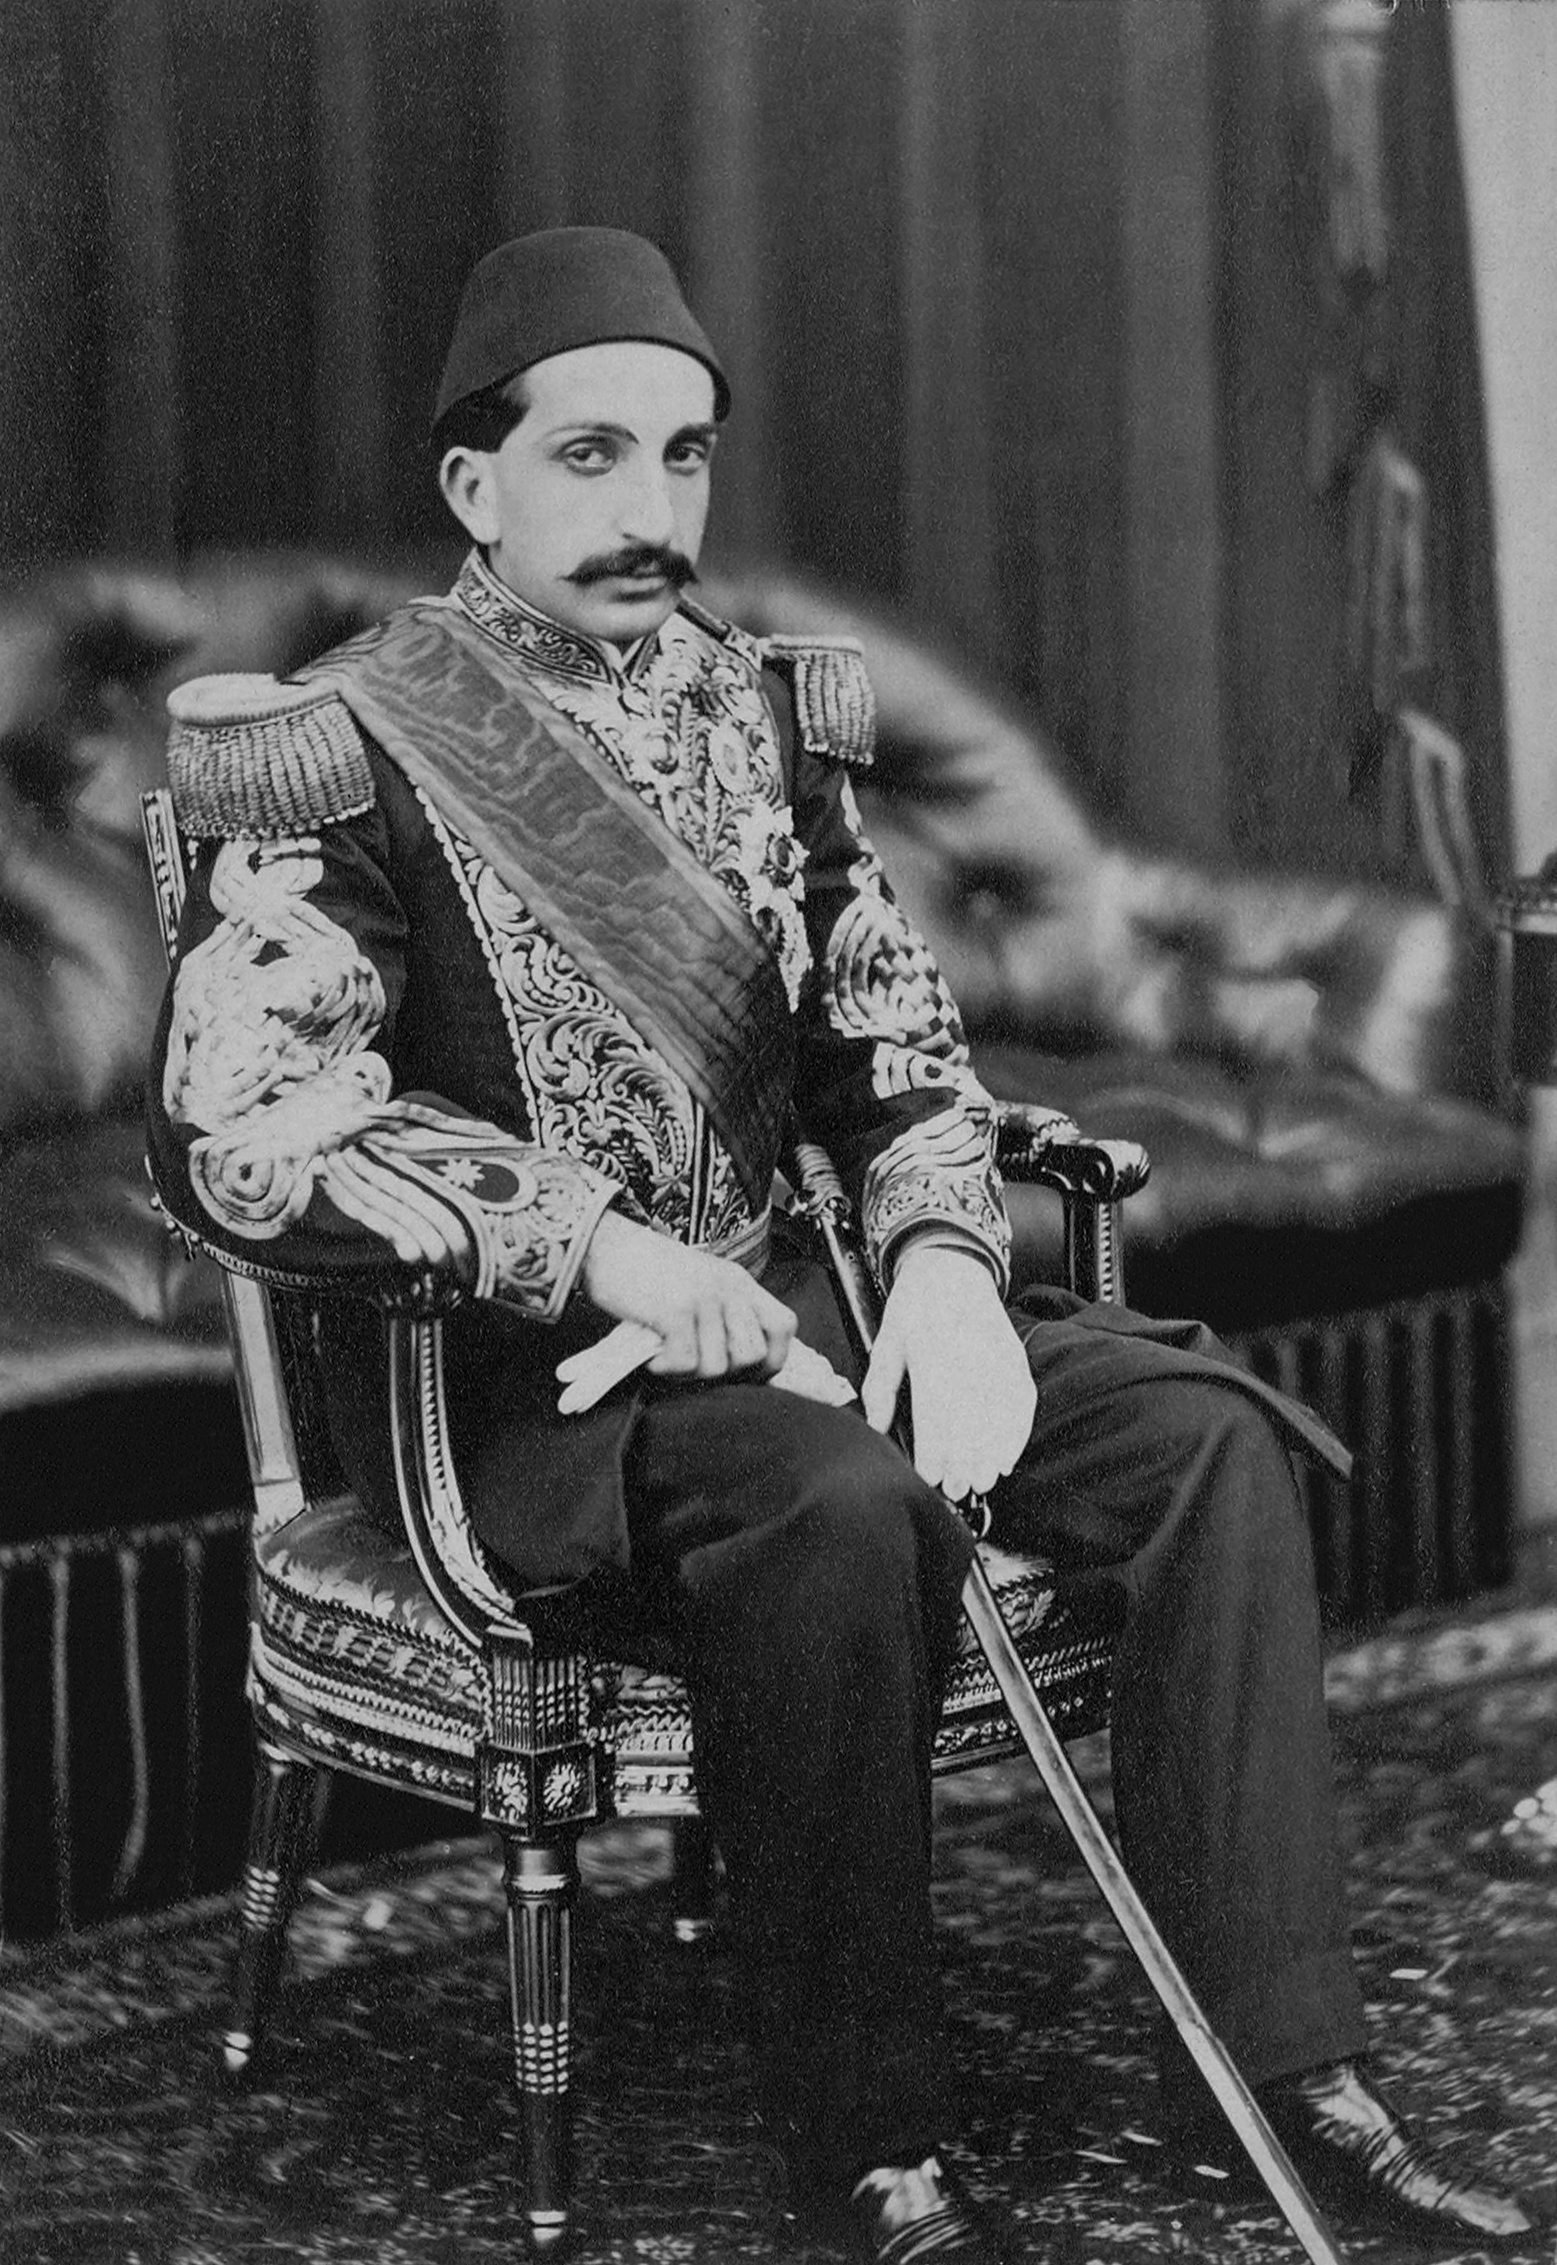 An official portrait of Şehzade Abdülhamid at Balmoral Castle, Scotland, taken in 1867. (Archive Photo)